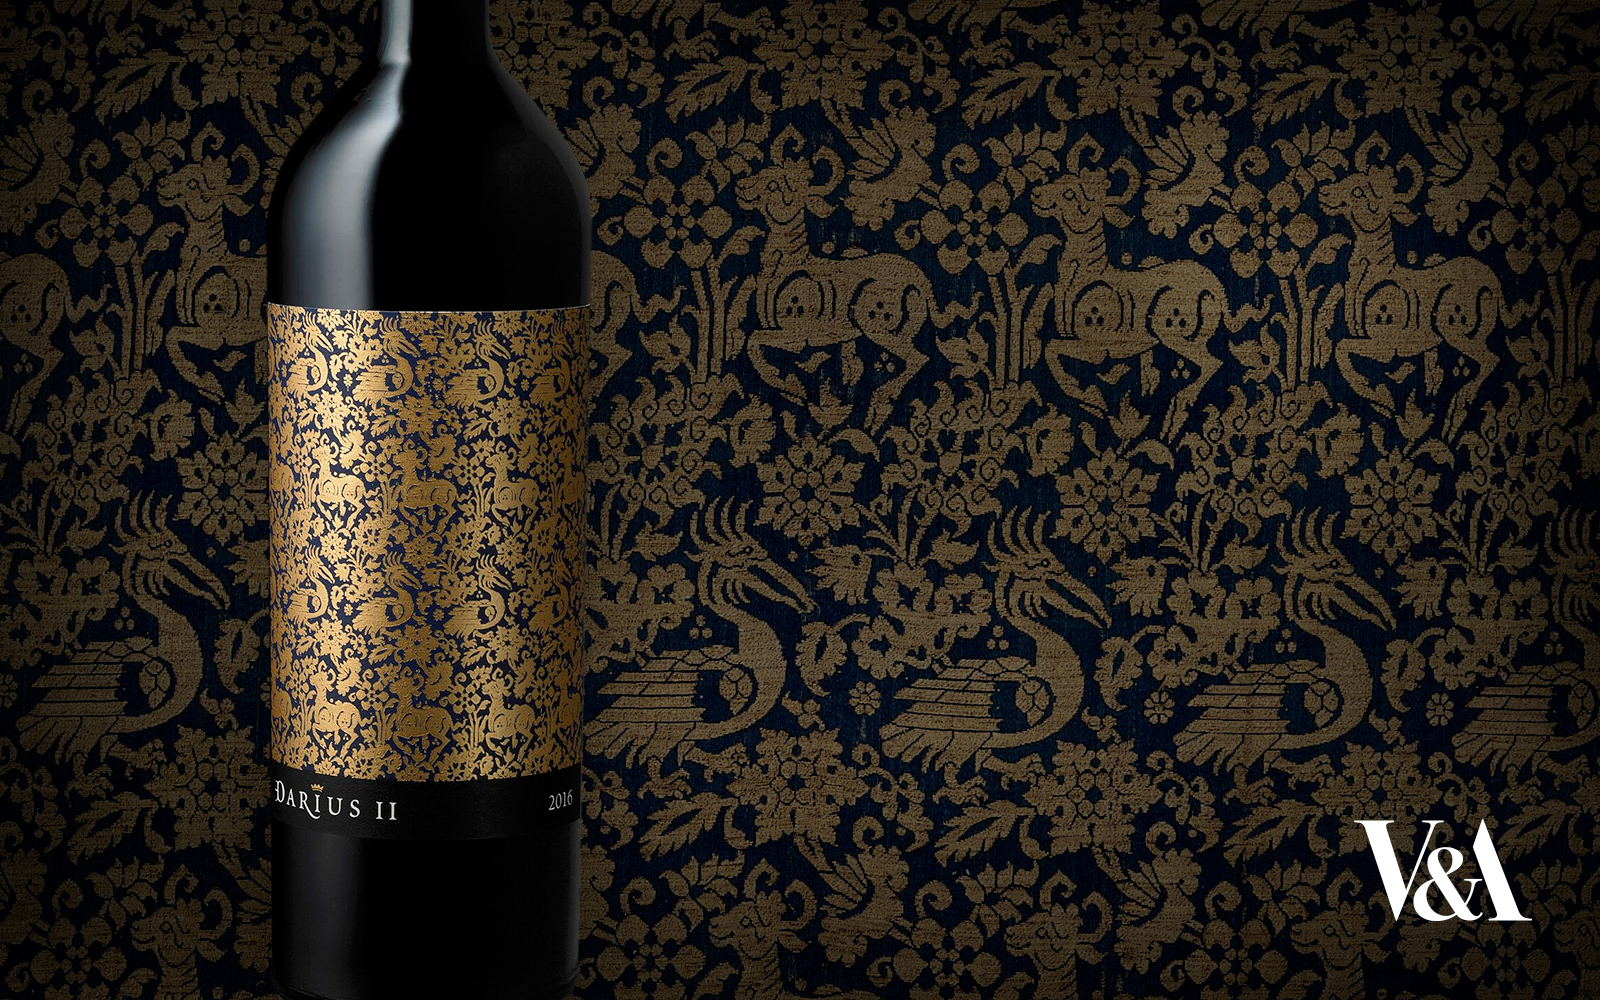 Gold and blue tapestry with matching wine bottle in front